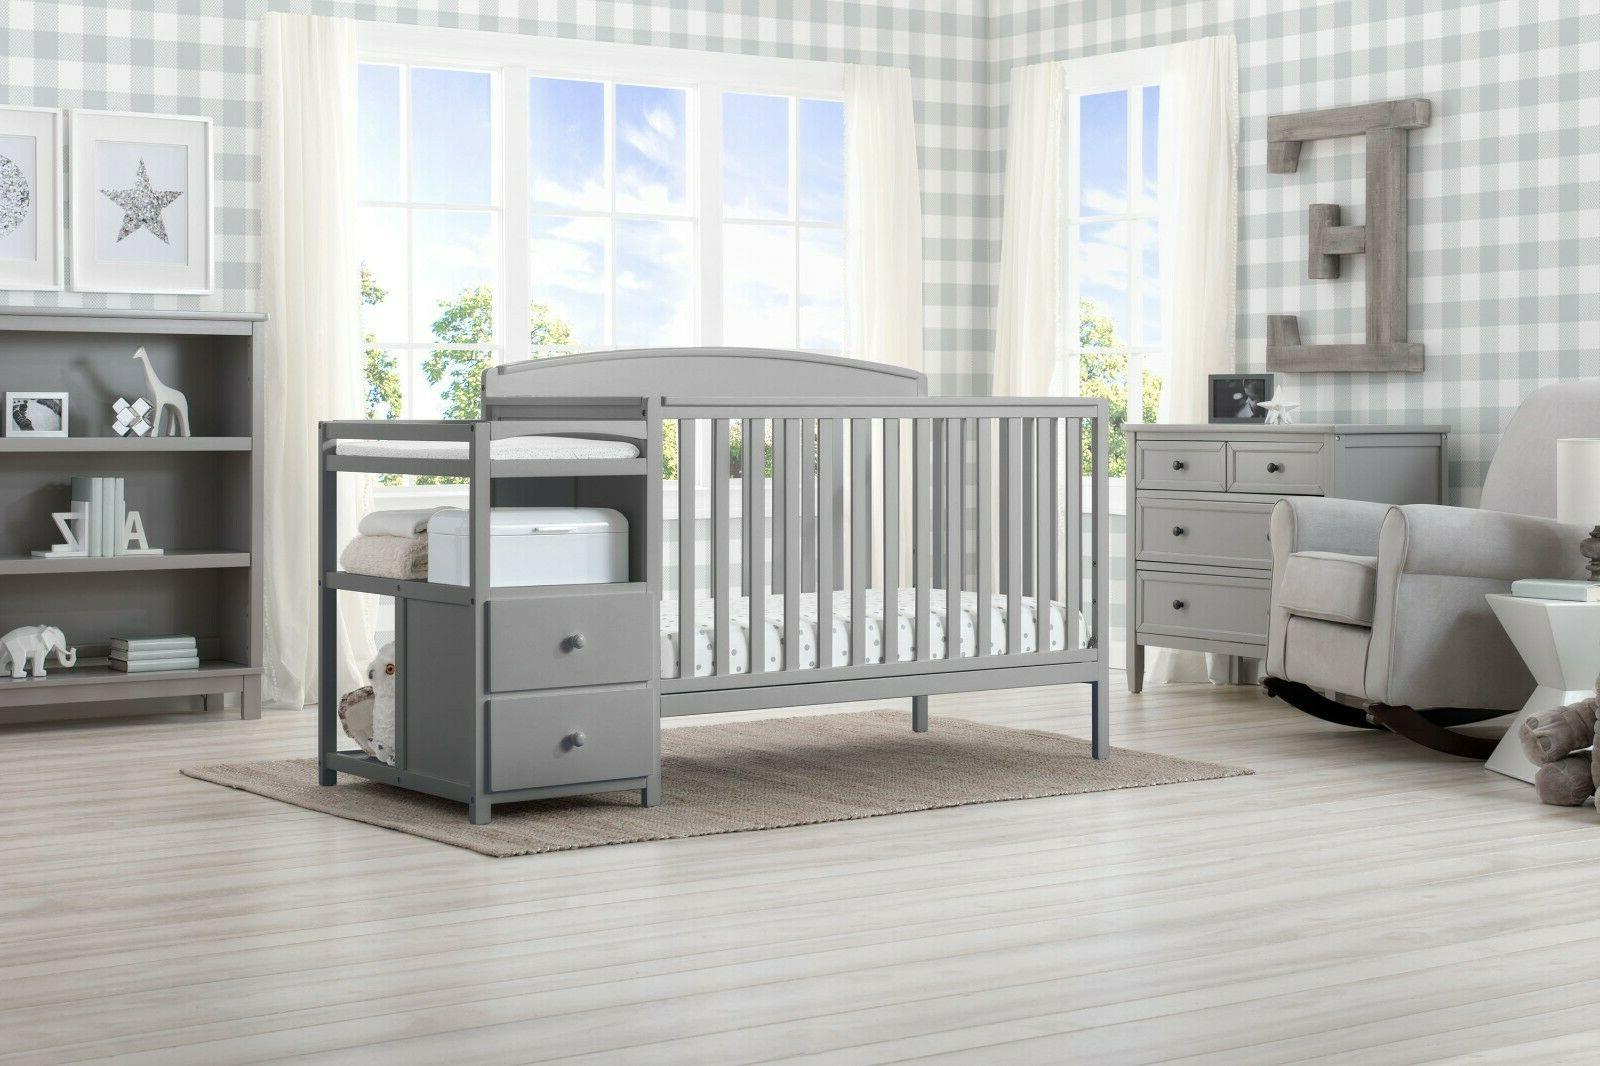 baby children royal 4 in 1 convertible